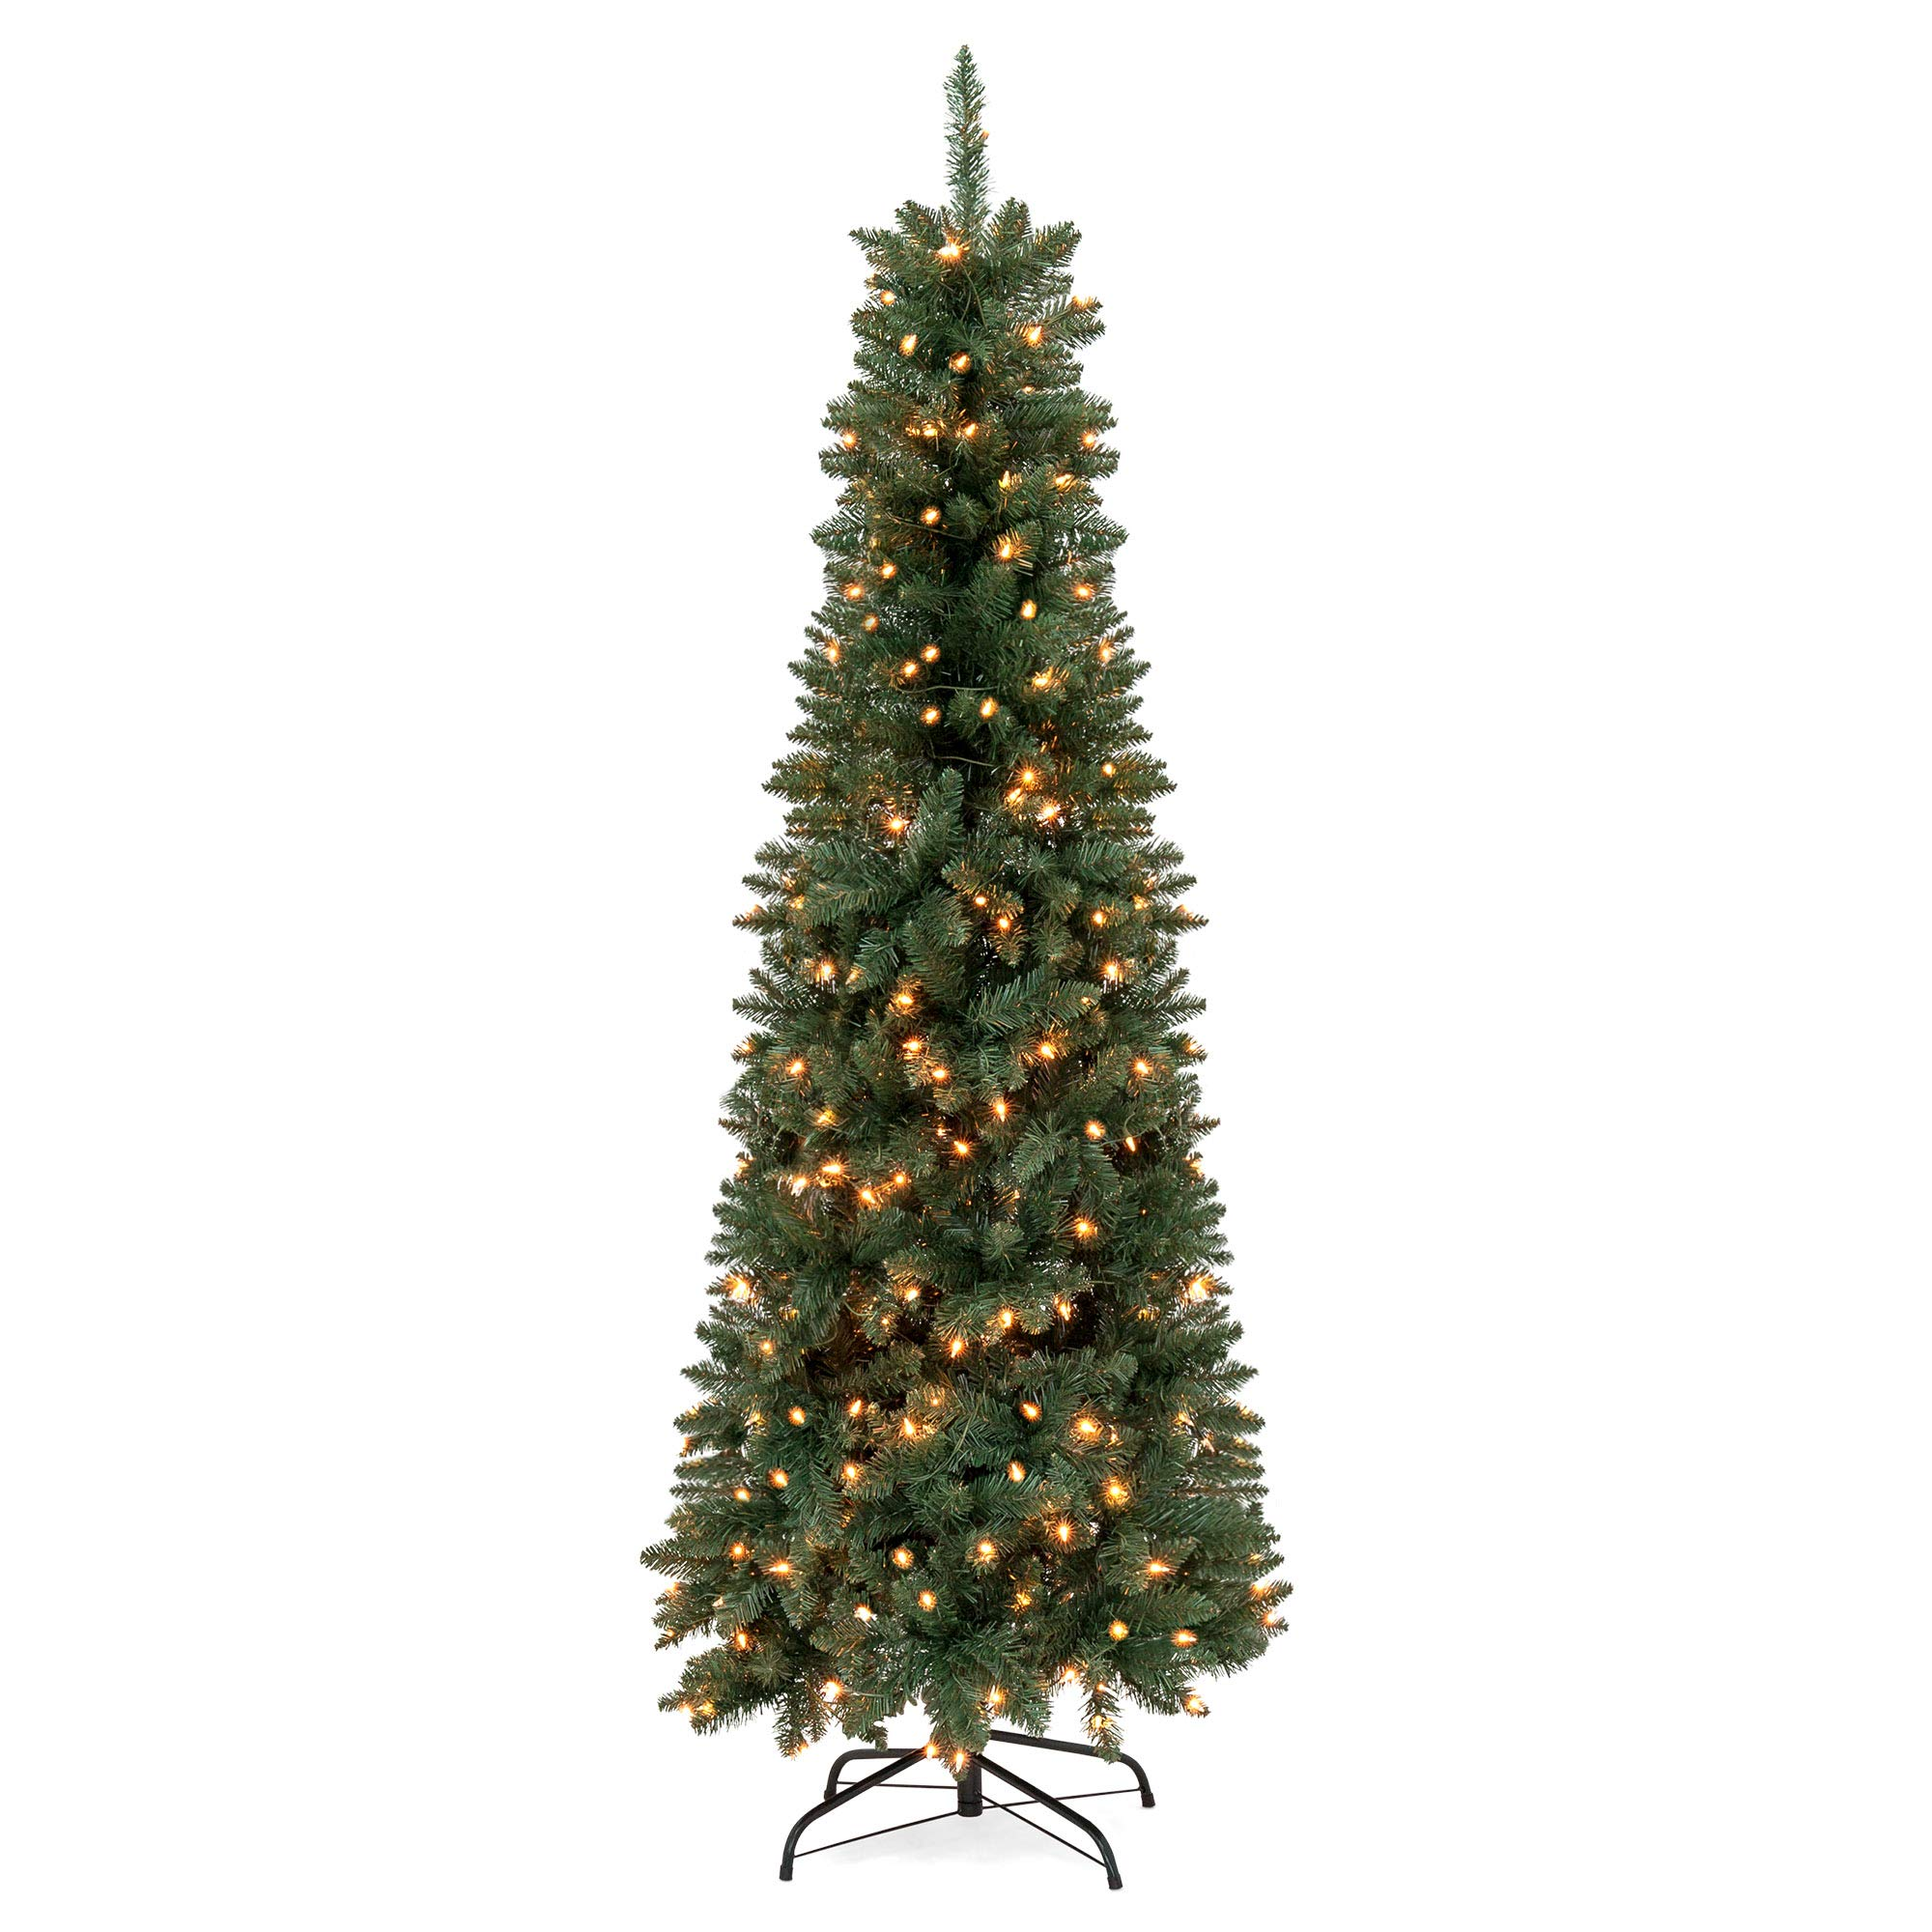 Best Choice Products 7.5ft Pre-Lit Hinged Fir Pencil Artificial Christmas Tree with 350 UL 588 Certified Lights, Foldable Stand, Green